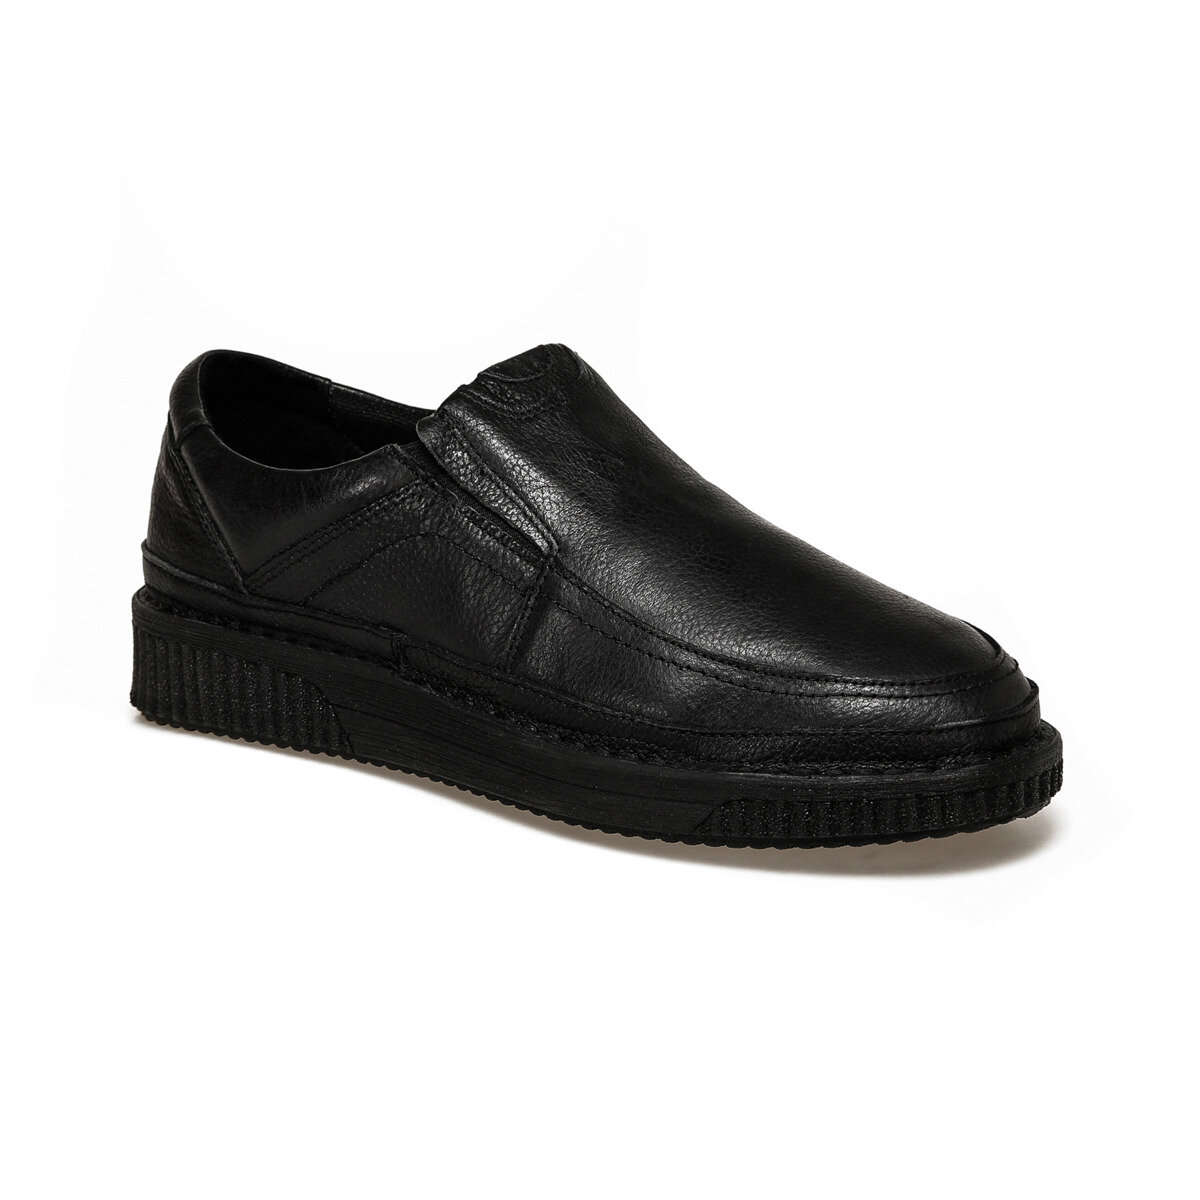 FLO ZB-1 Black Men 'S Modern Shoes Flogart